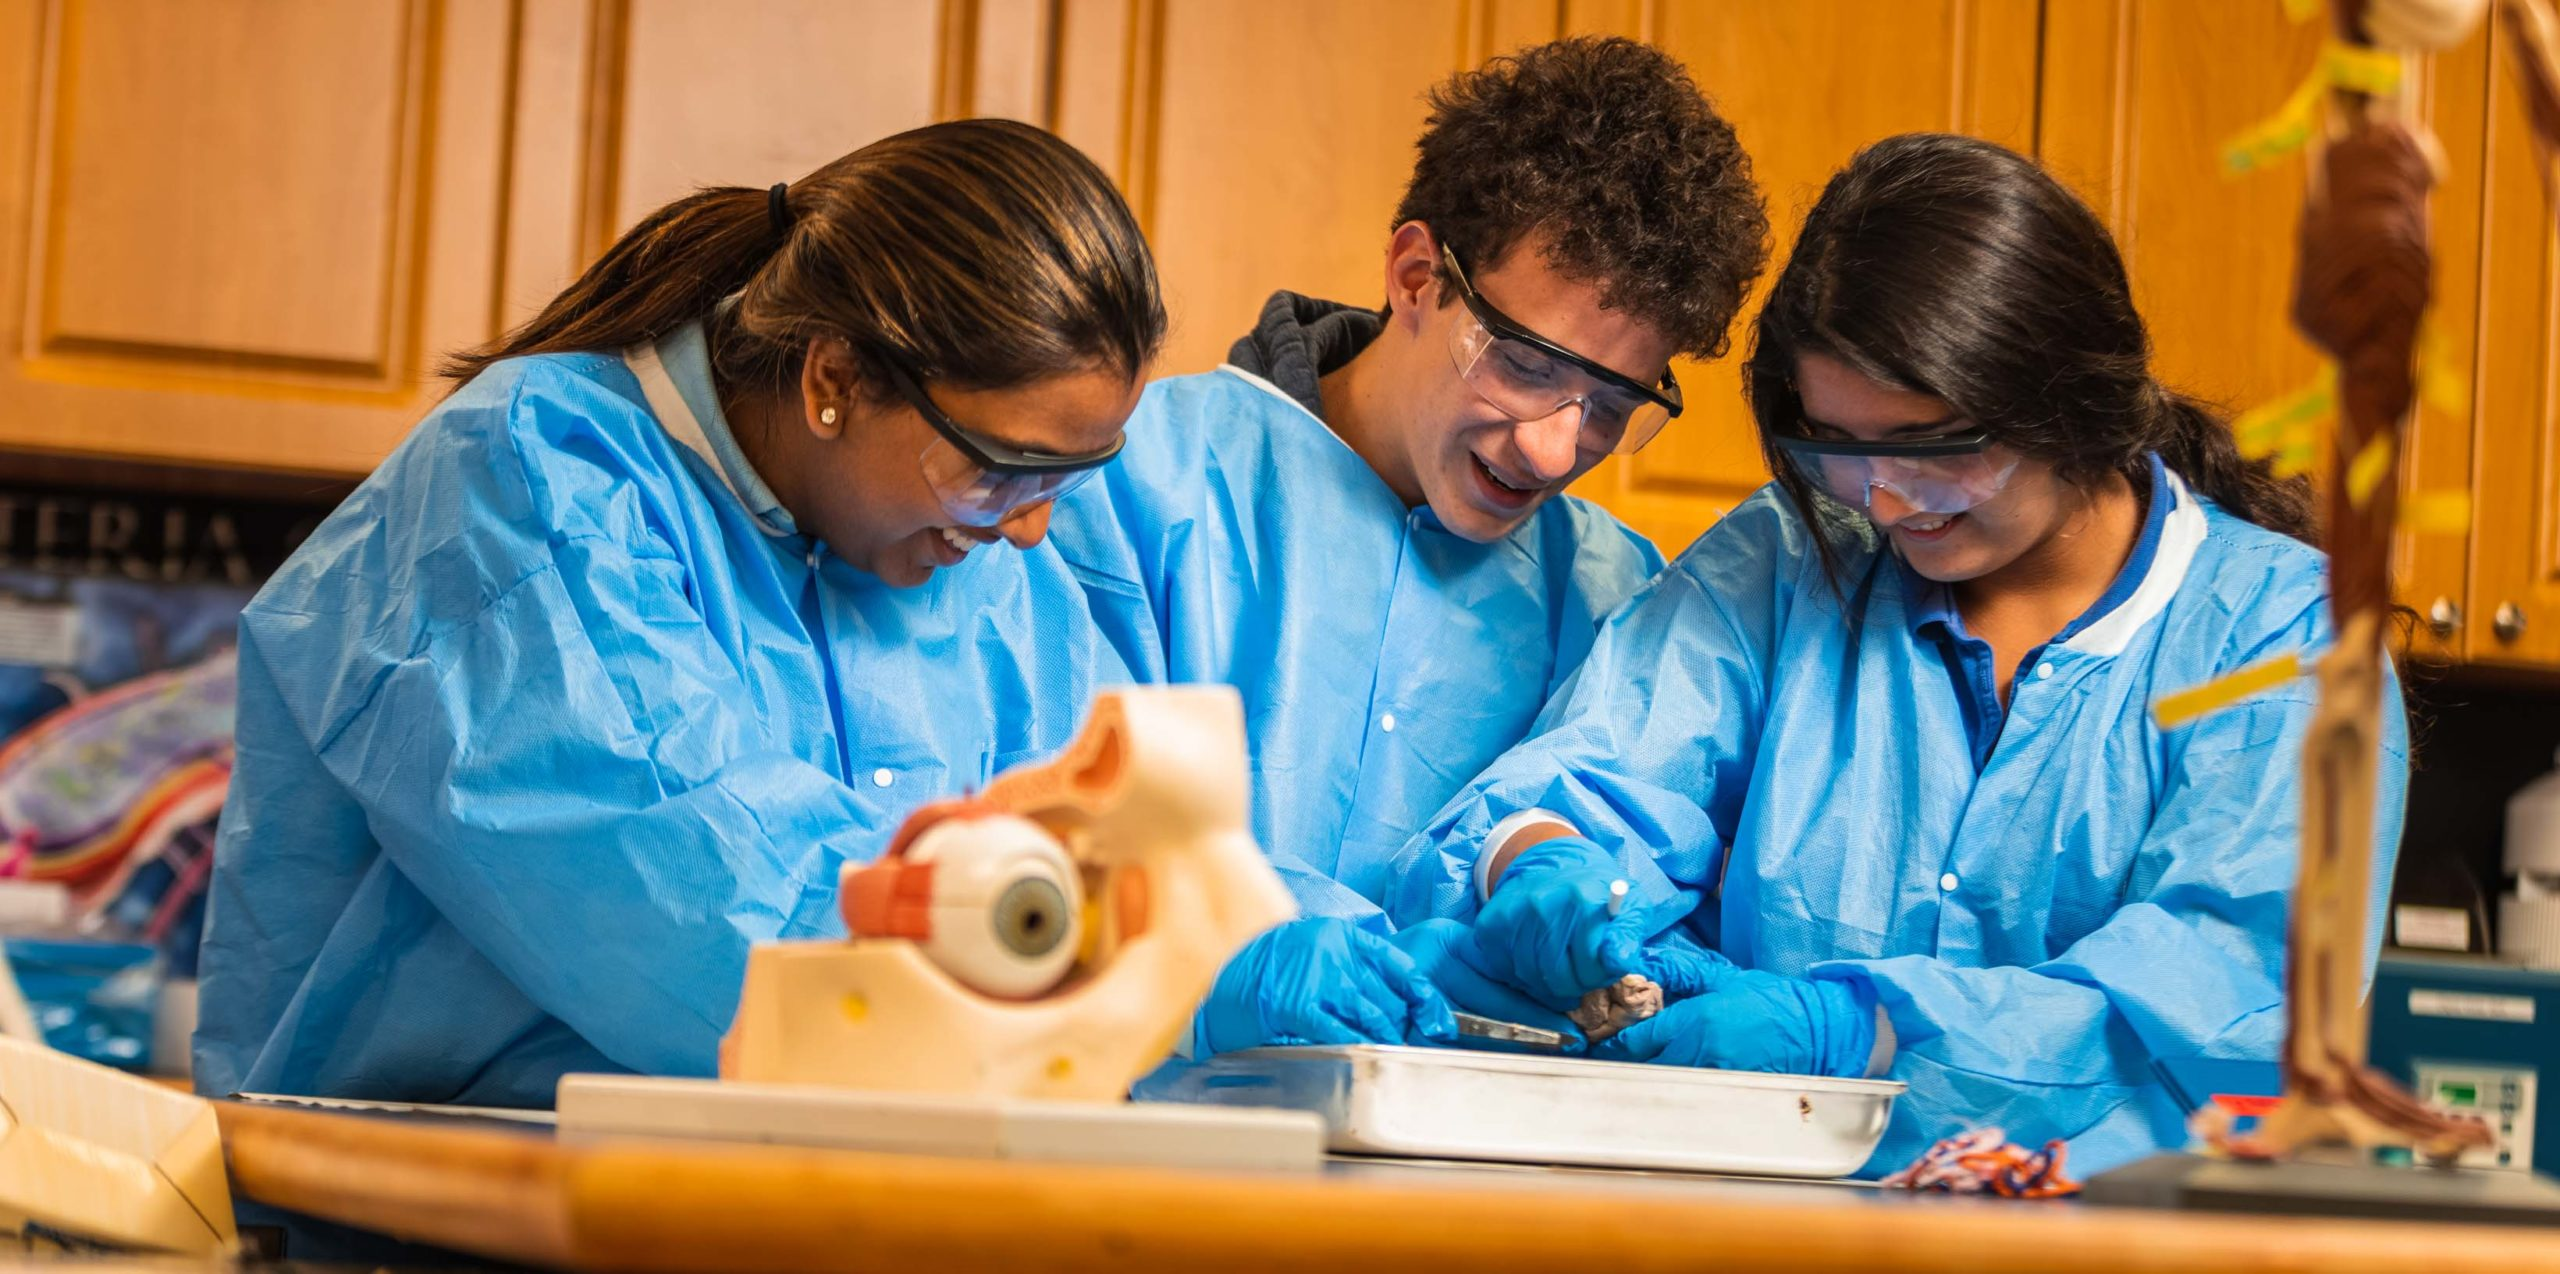 Three students dissecting an animal